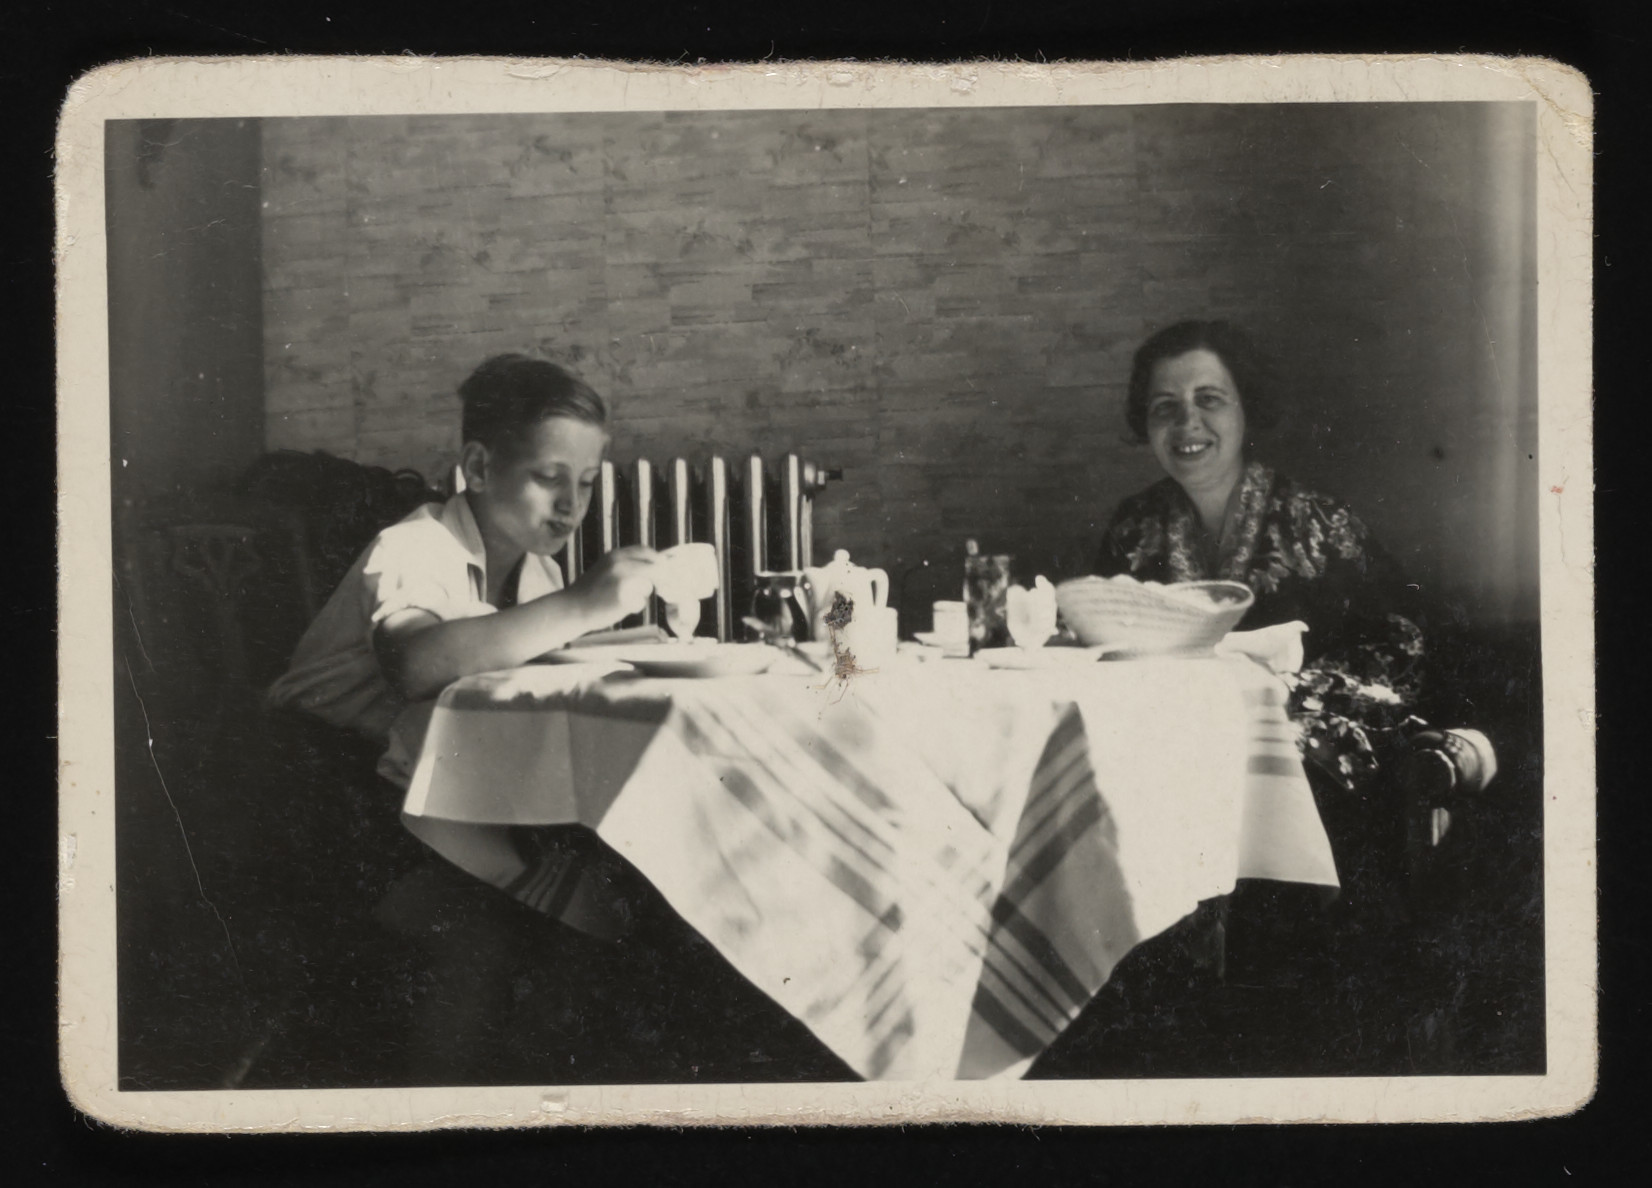 Olga Loeb and her son, Hans, sit at a table set for tea.